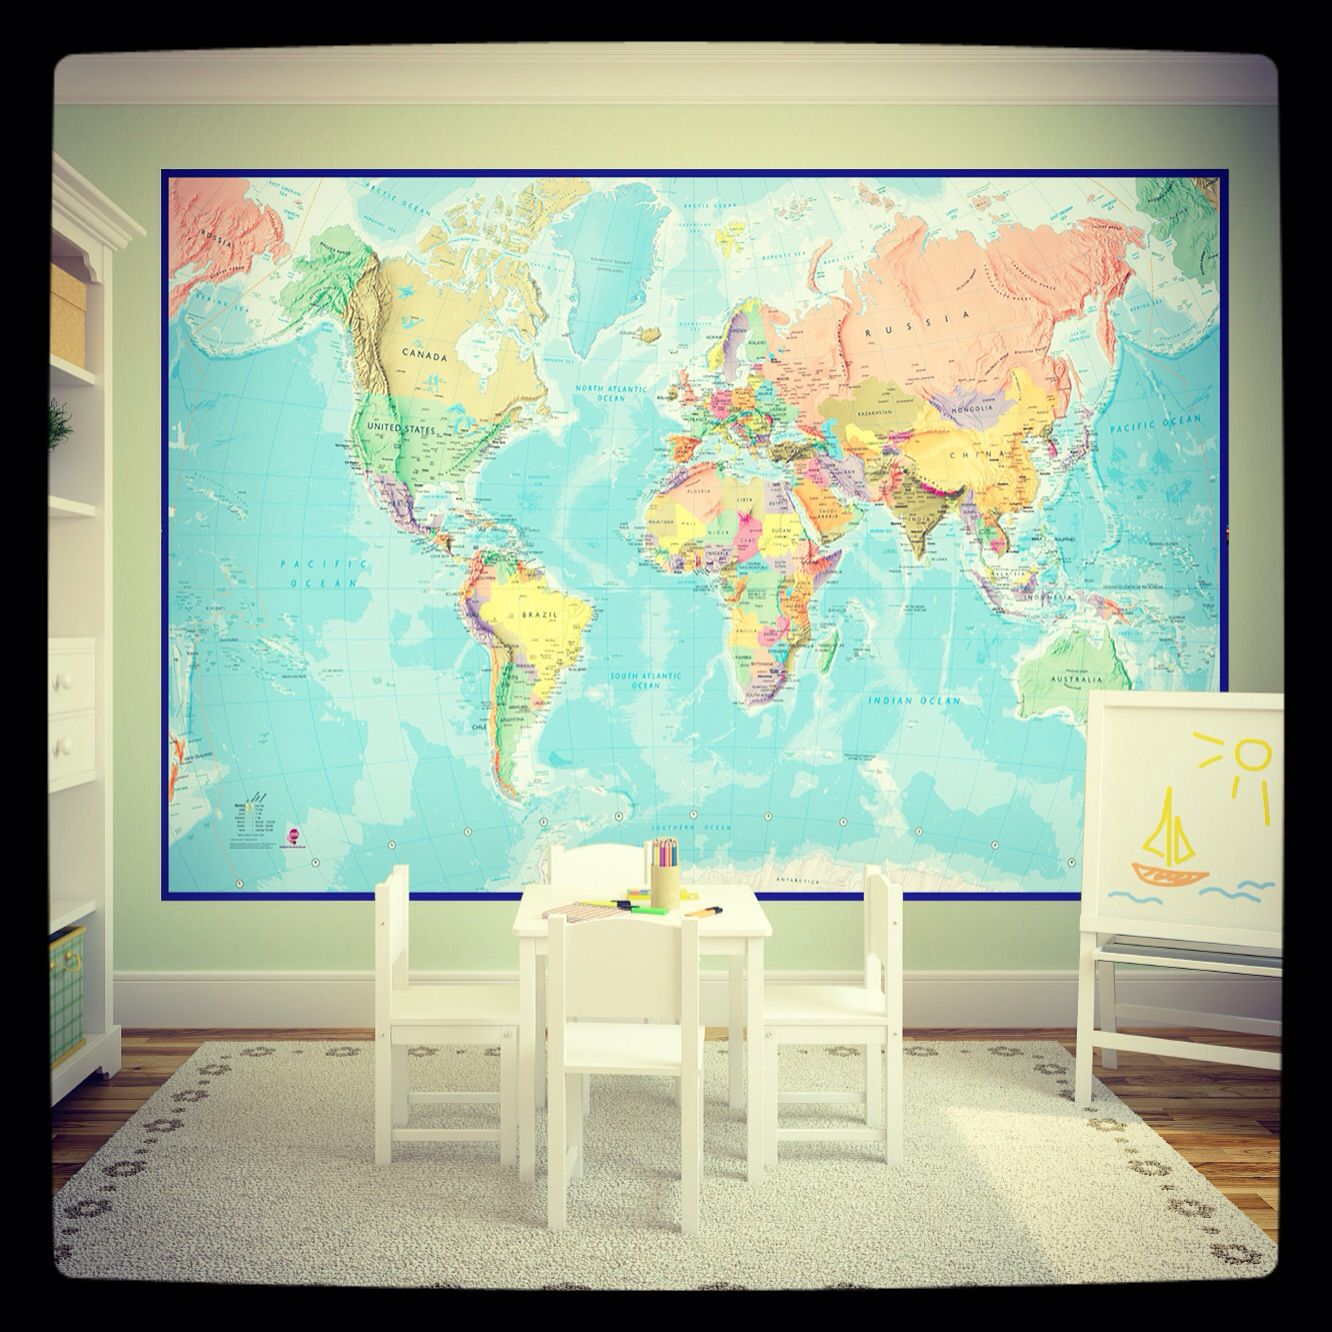 Giant world map mural now only 2900 including delivery map giant world map mural now only 2900 including delivery sciox Gallery